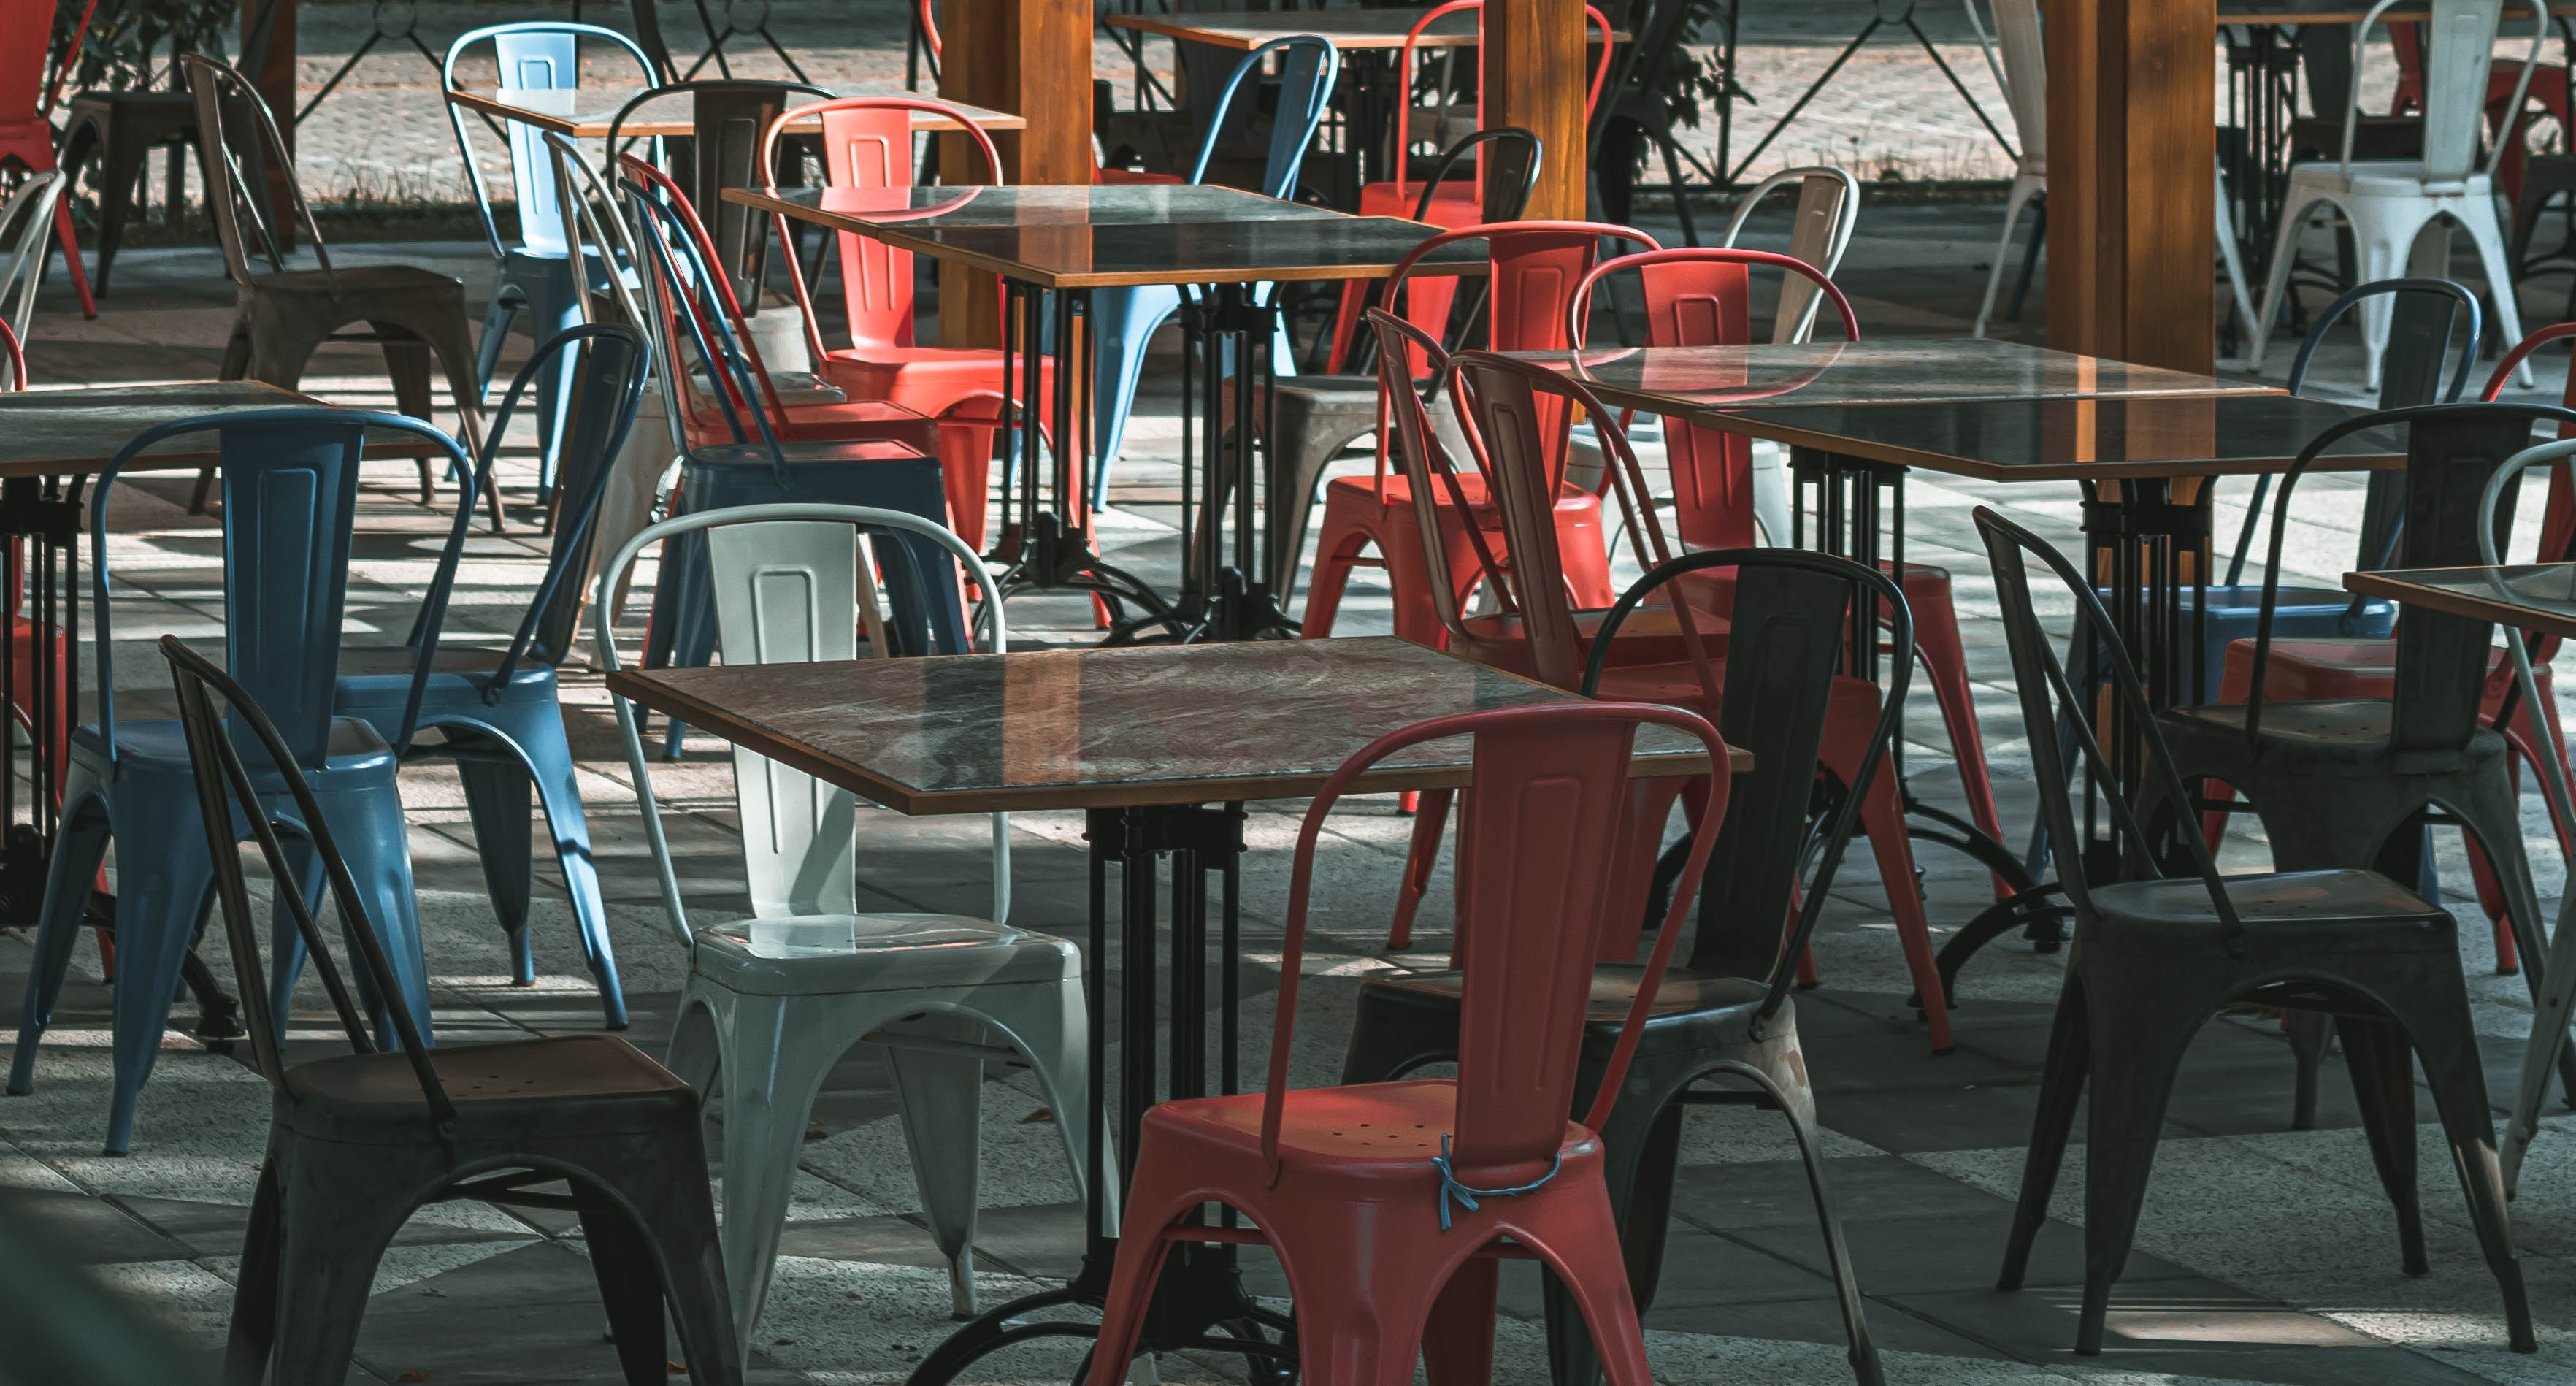 tables-and-chairs-under-canopy-2523376